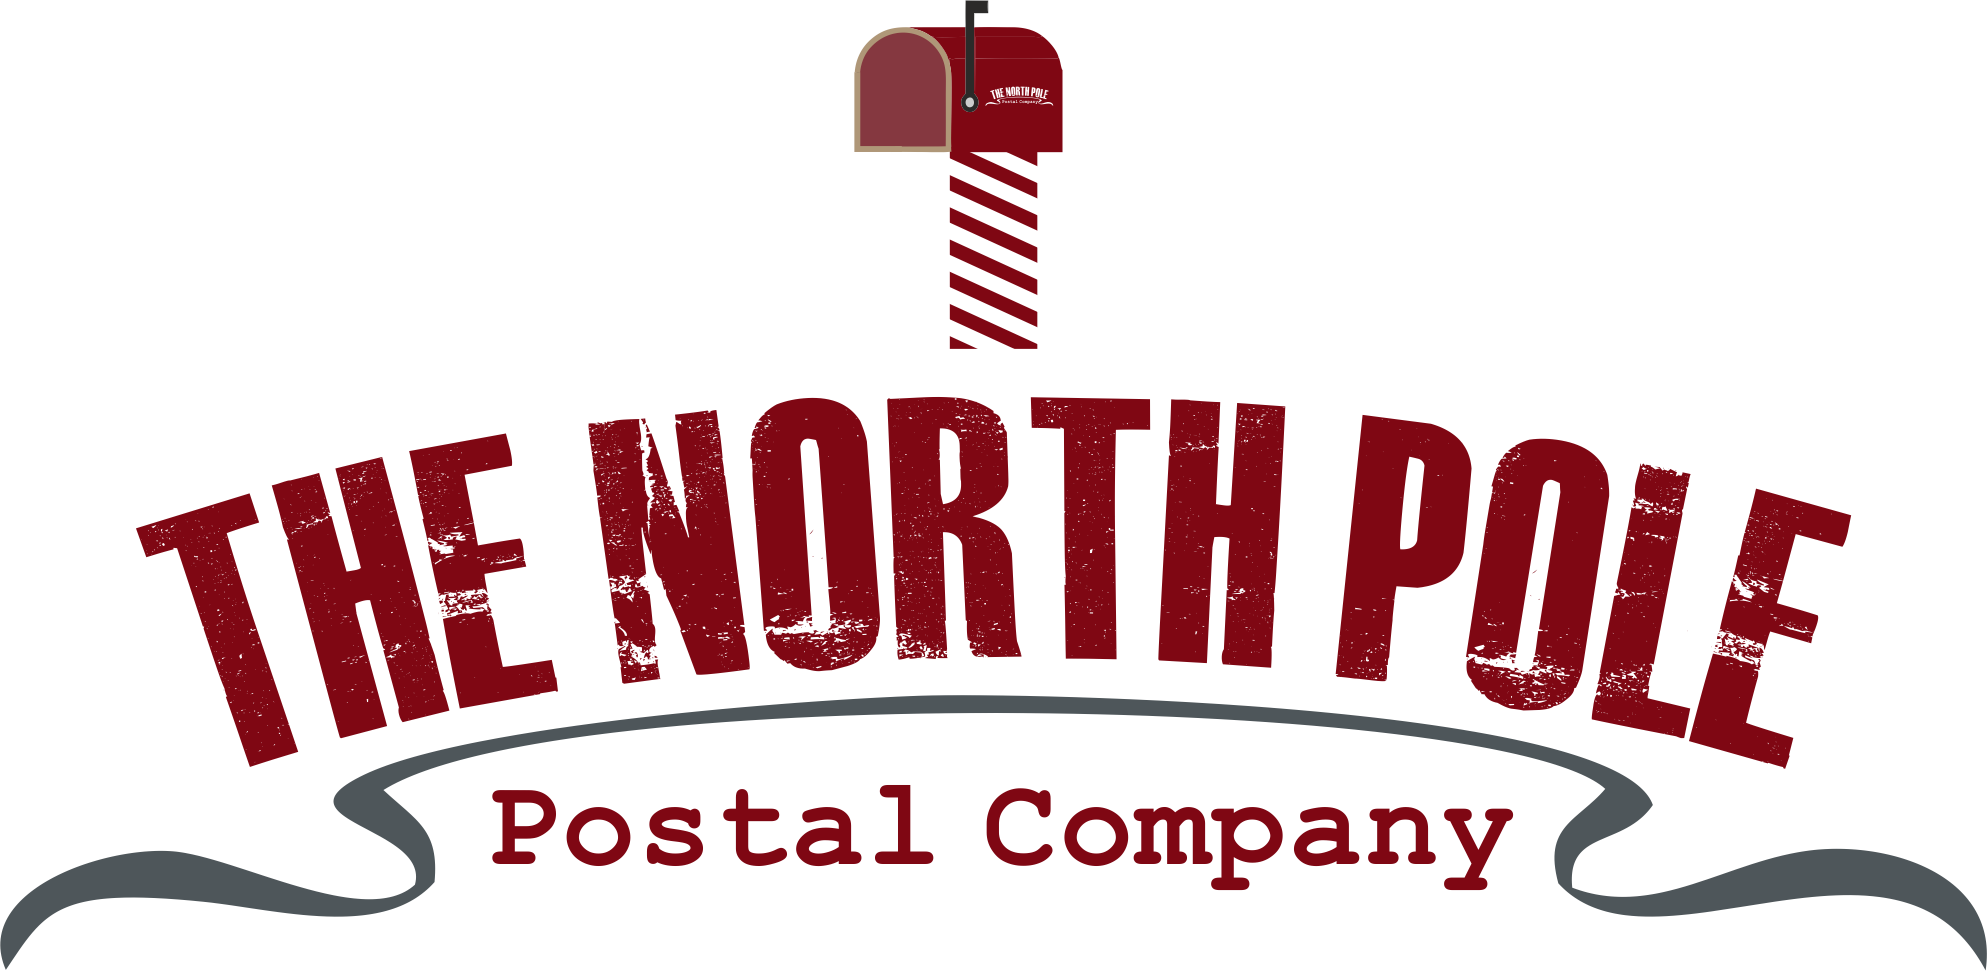 Stamp clipart north pole. Updates the postal company